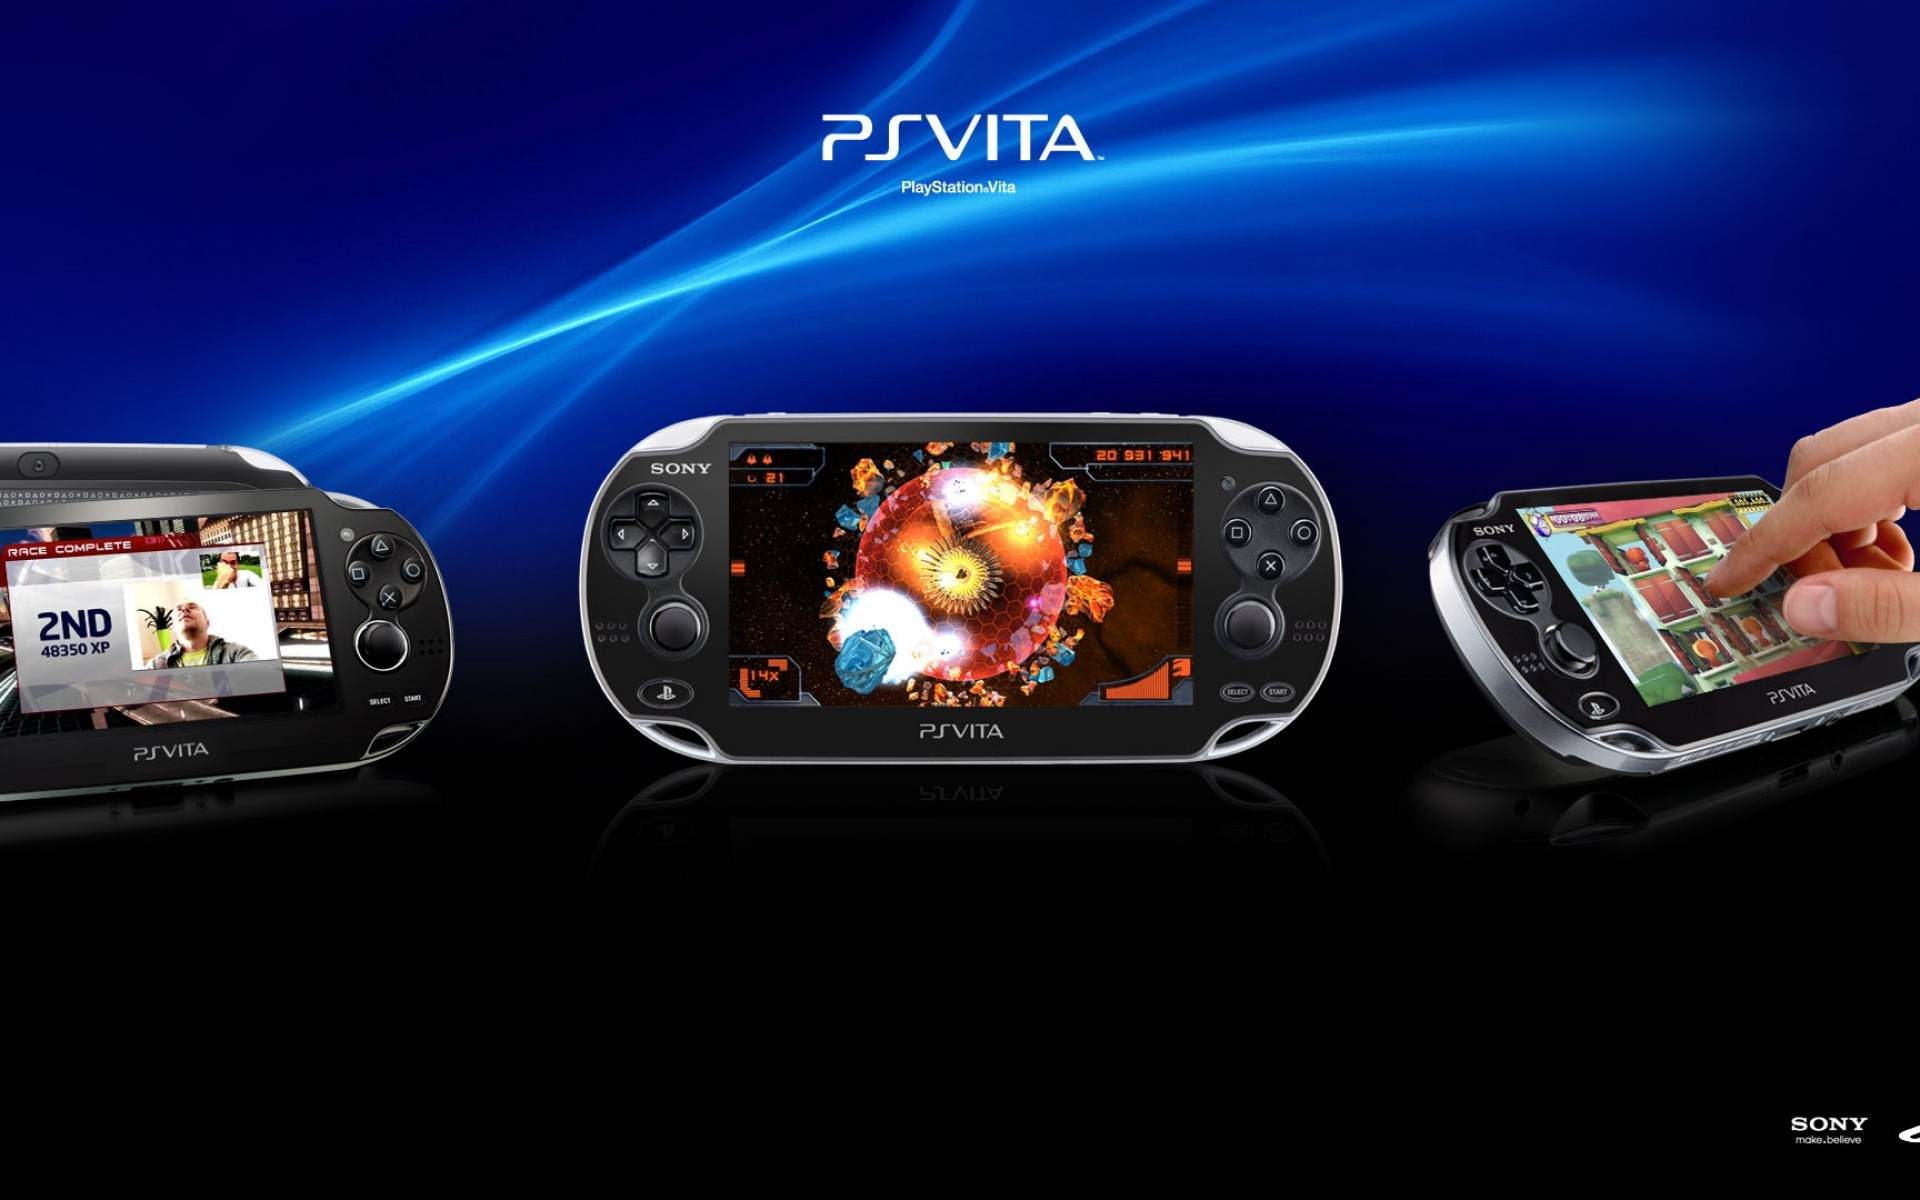 2 new game releases for PS Vita